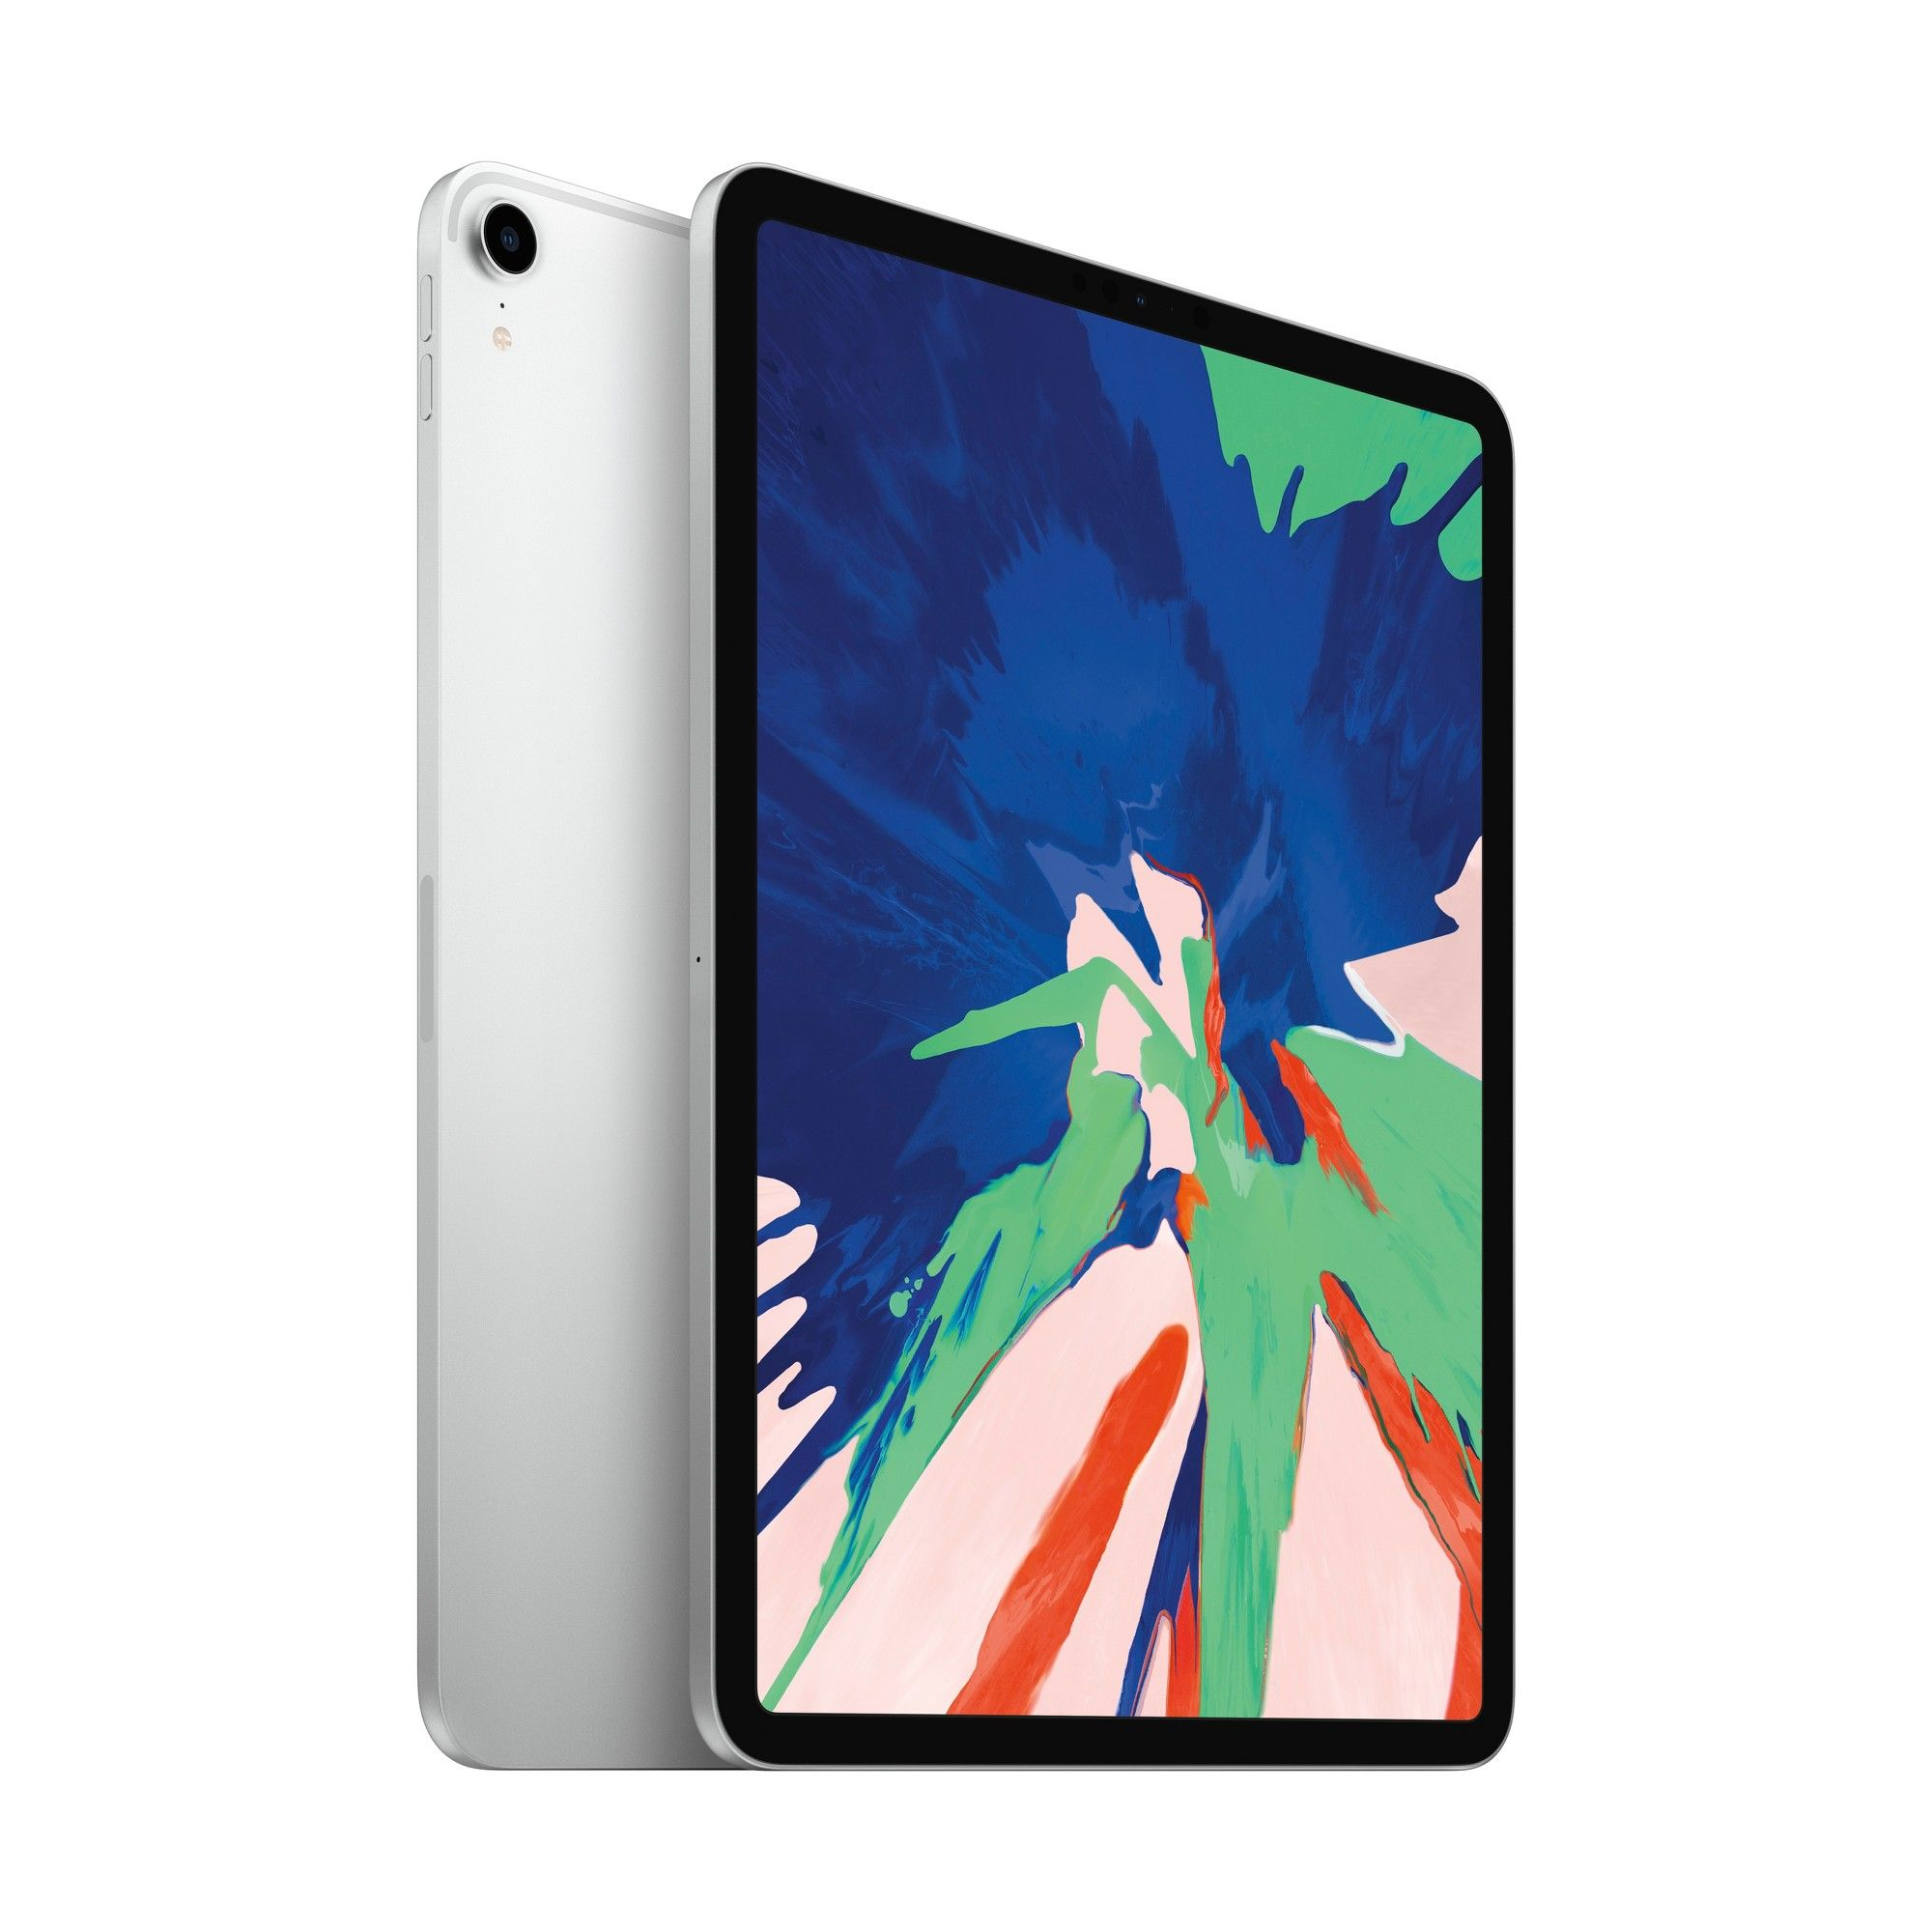 Apple Ipad Pro 11 Inch 256gb Wi Fi Only 2018 Model 3rd Generation Mtxr2ll A Silver Ipad Pro Apple Ipad Pro Apple Ipad